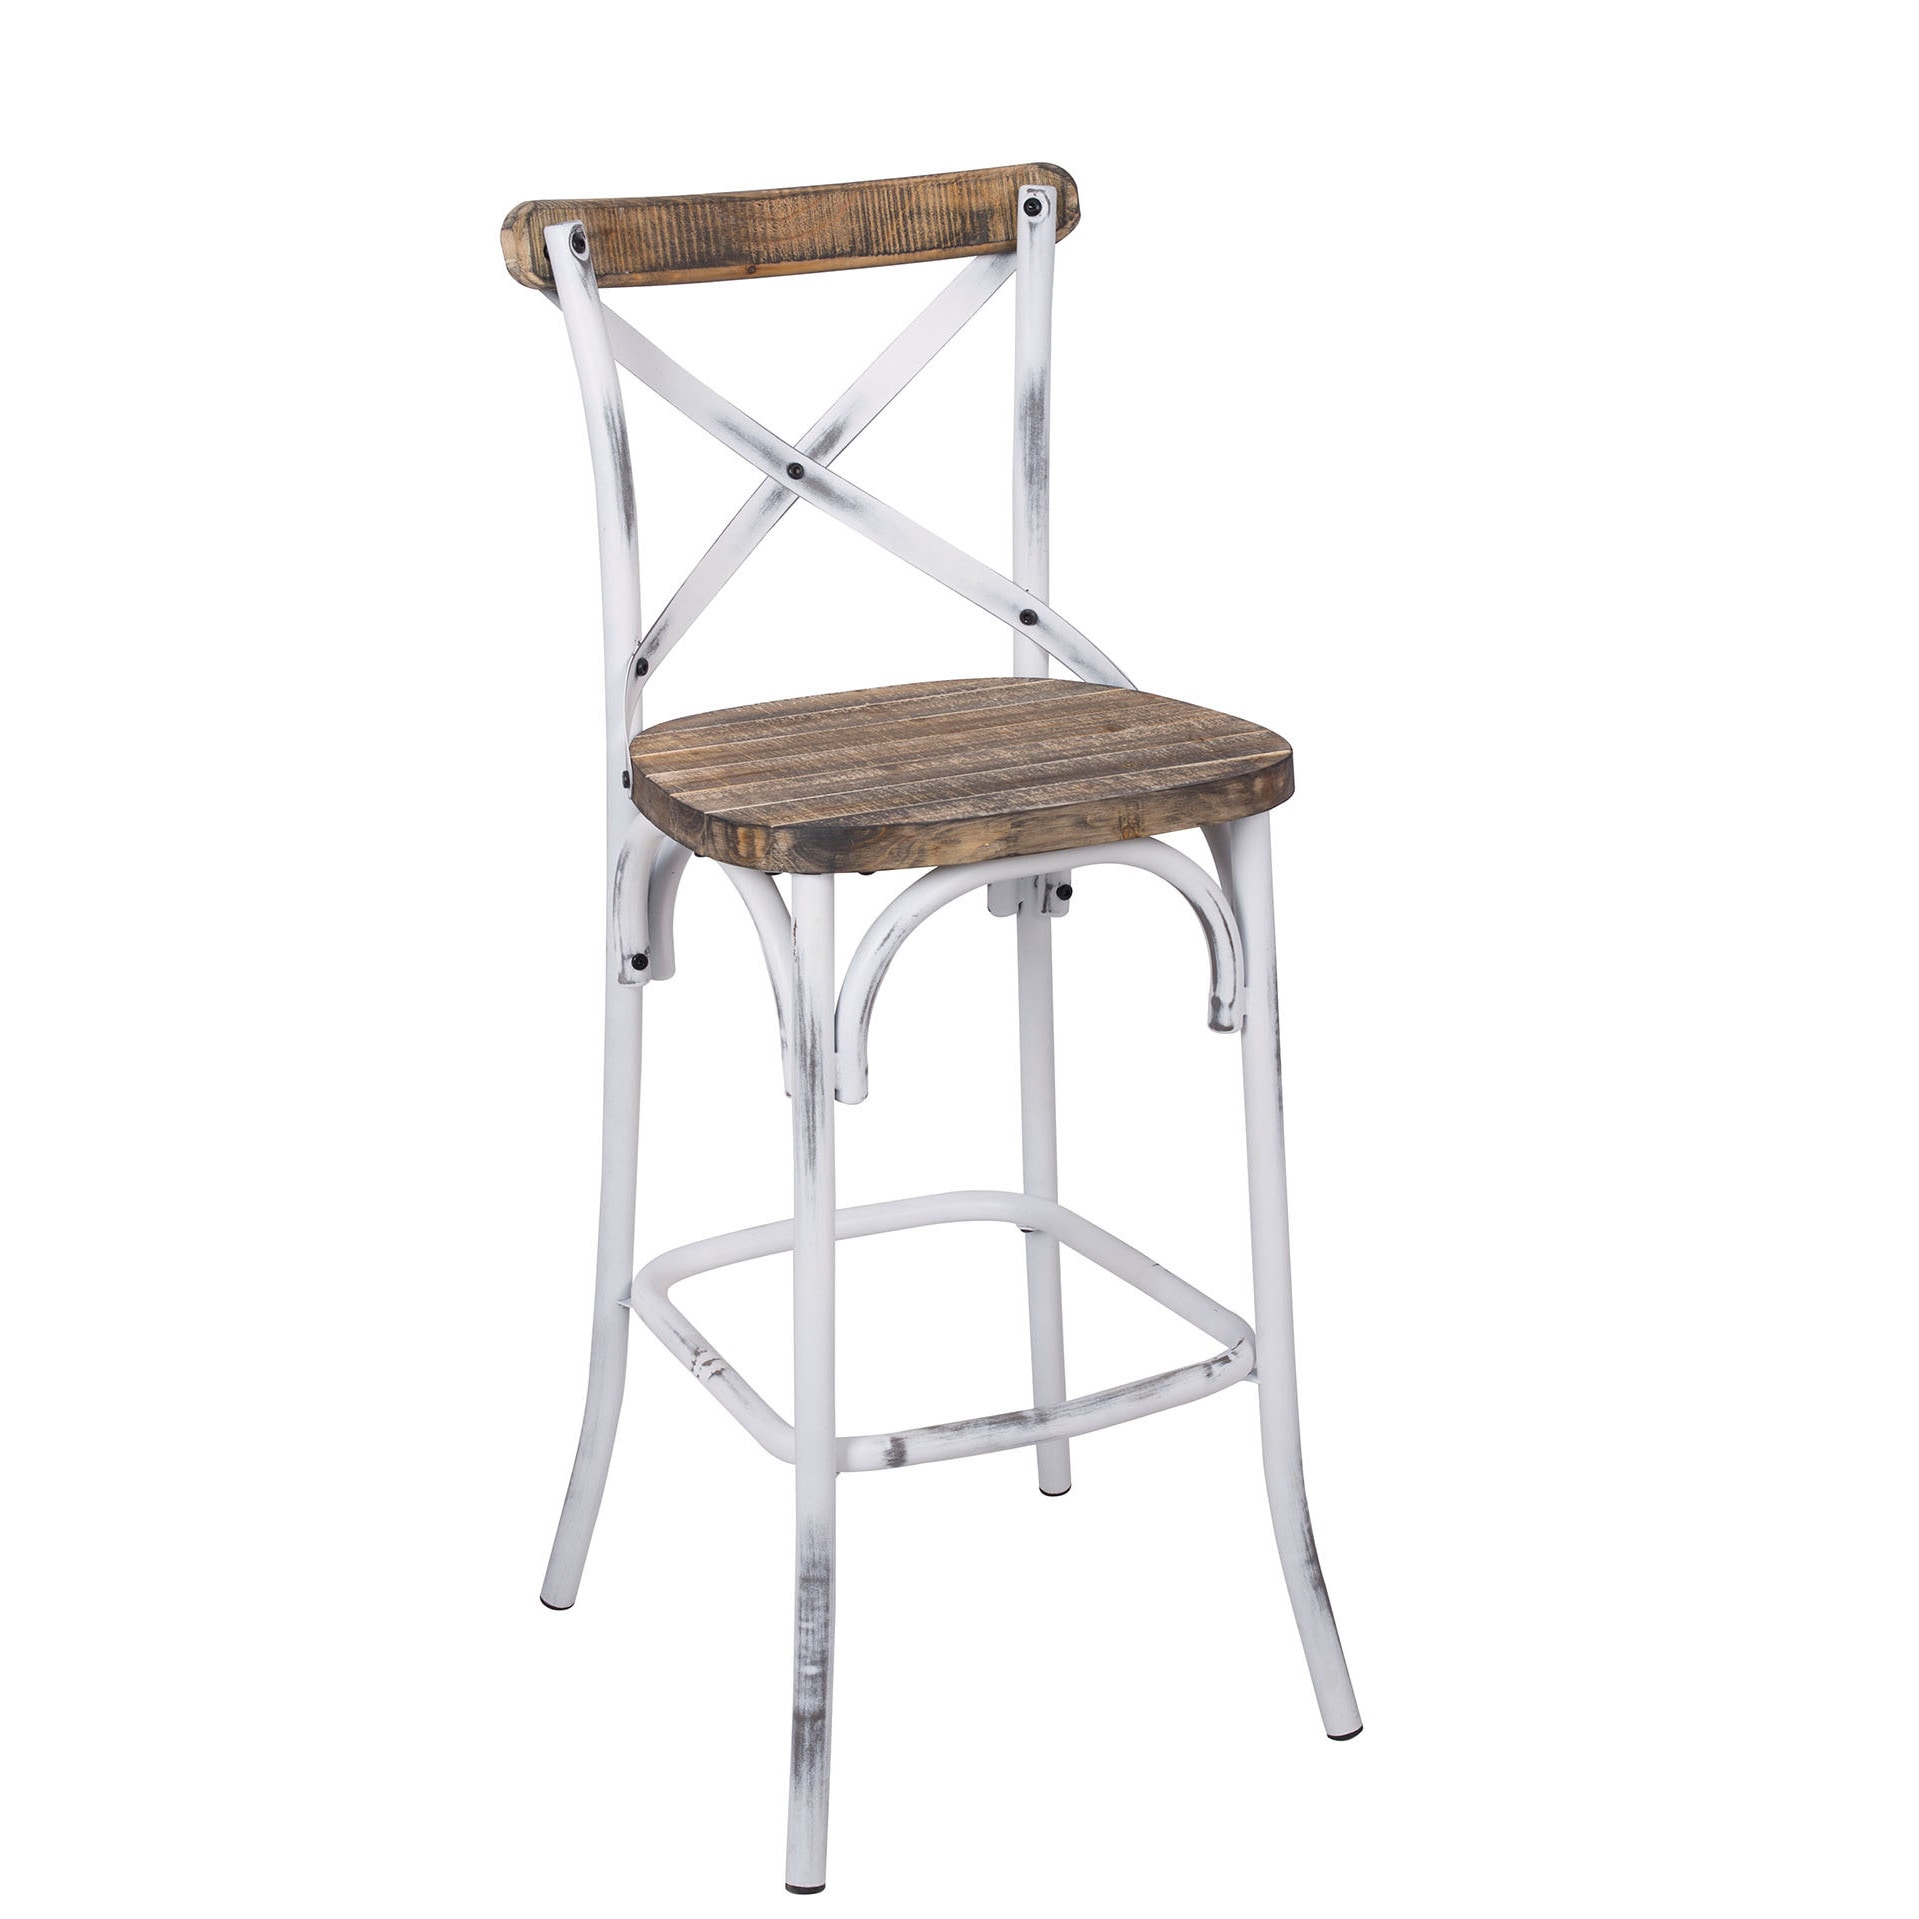 Wood Bar Chairs Zaire 96642 Walnut Colored Antique White Steel And Wood Bar Chair